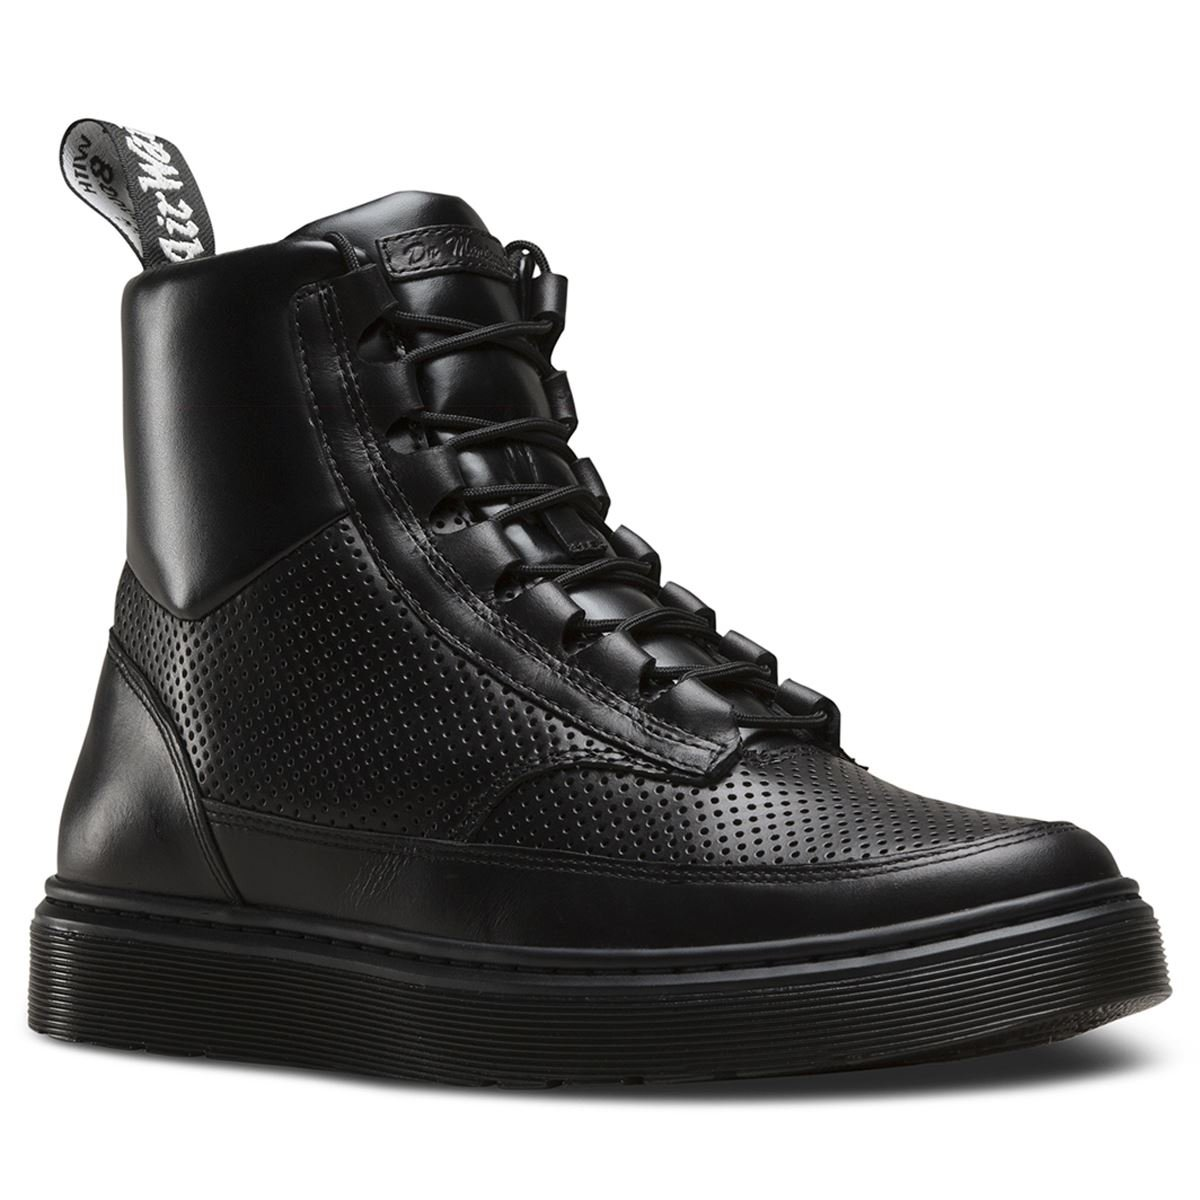 Dr. Martens Mens Kamar Combat Boot Black Size UK 8 (9 M US Men/10 M US Women)